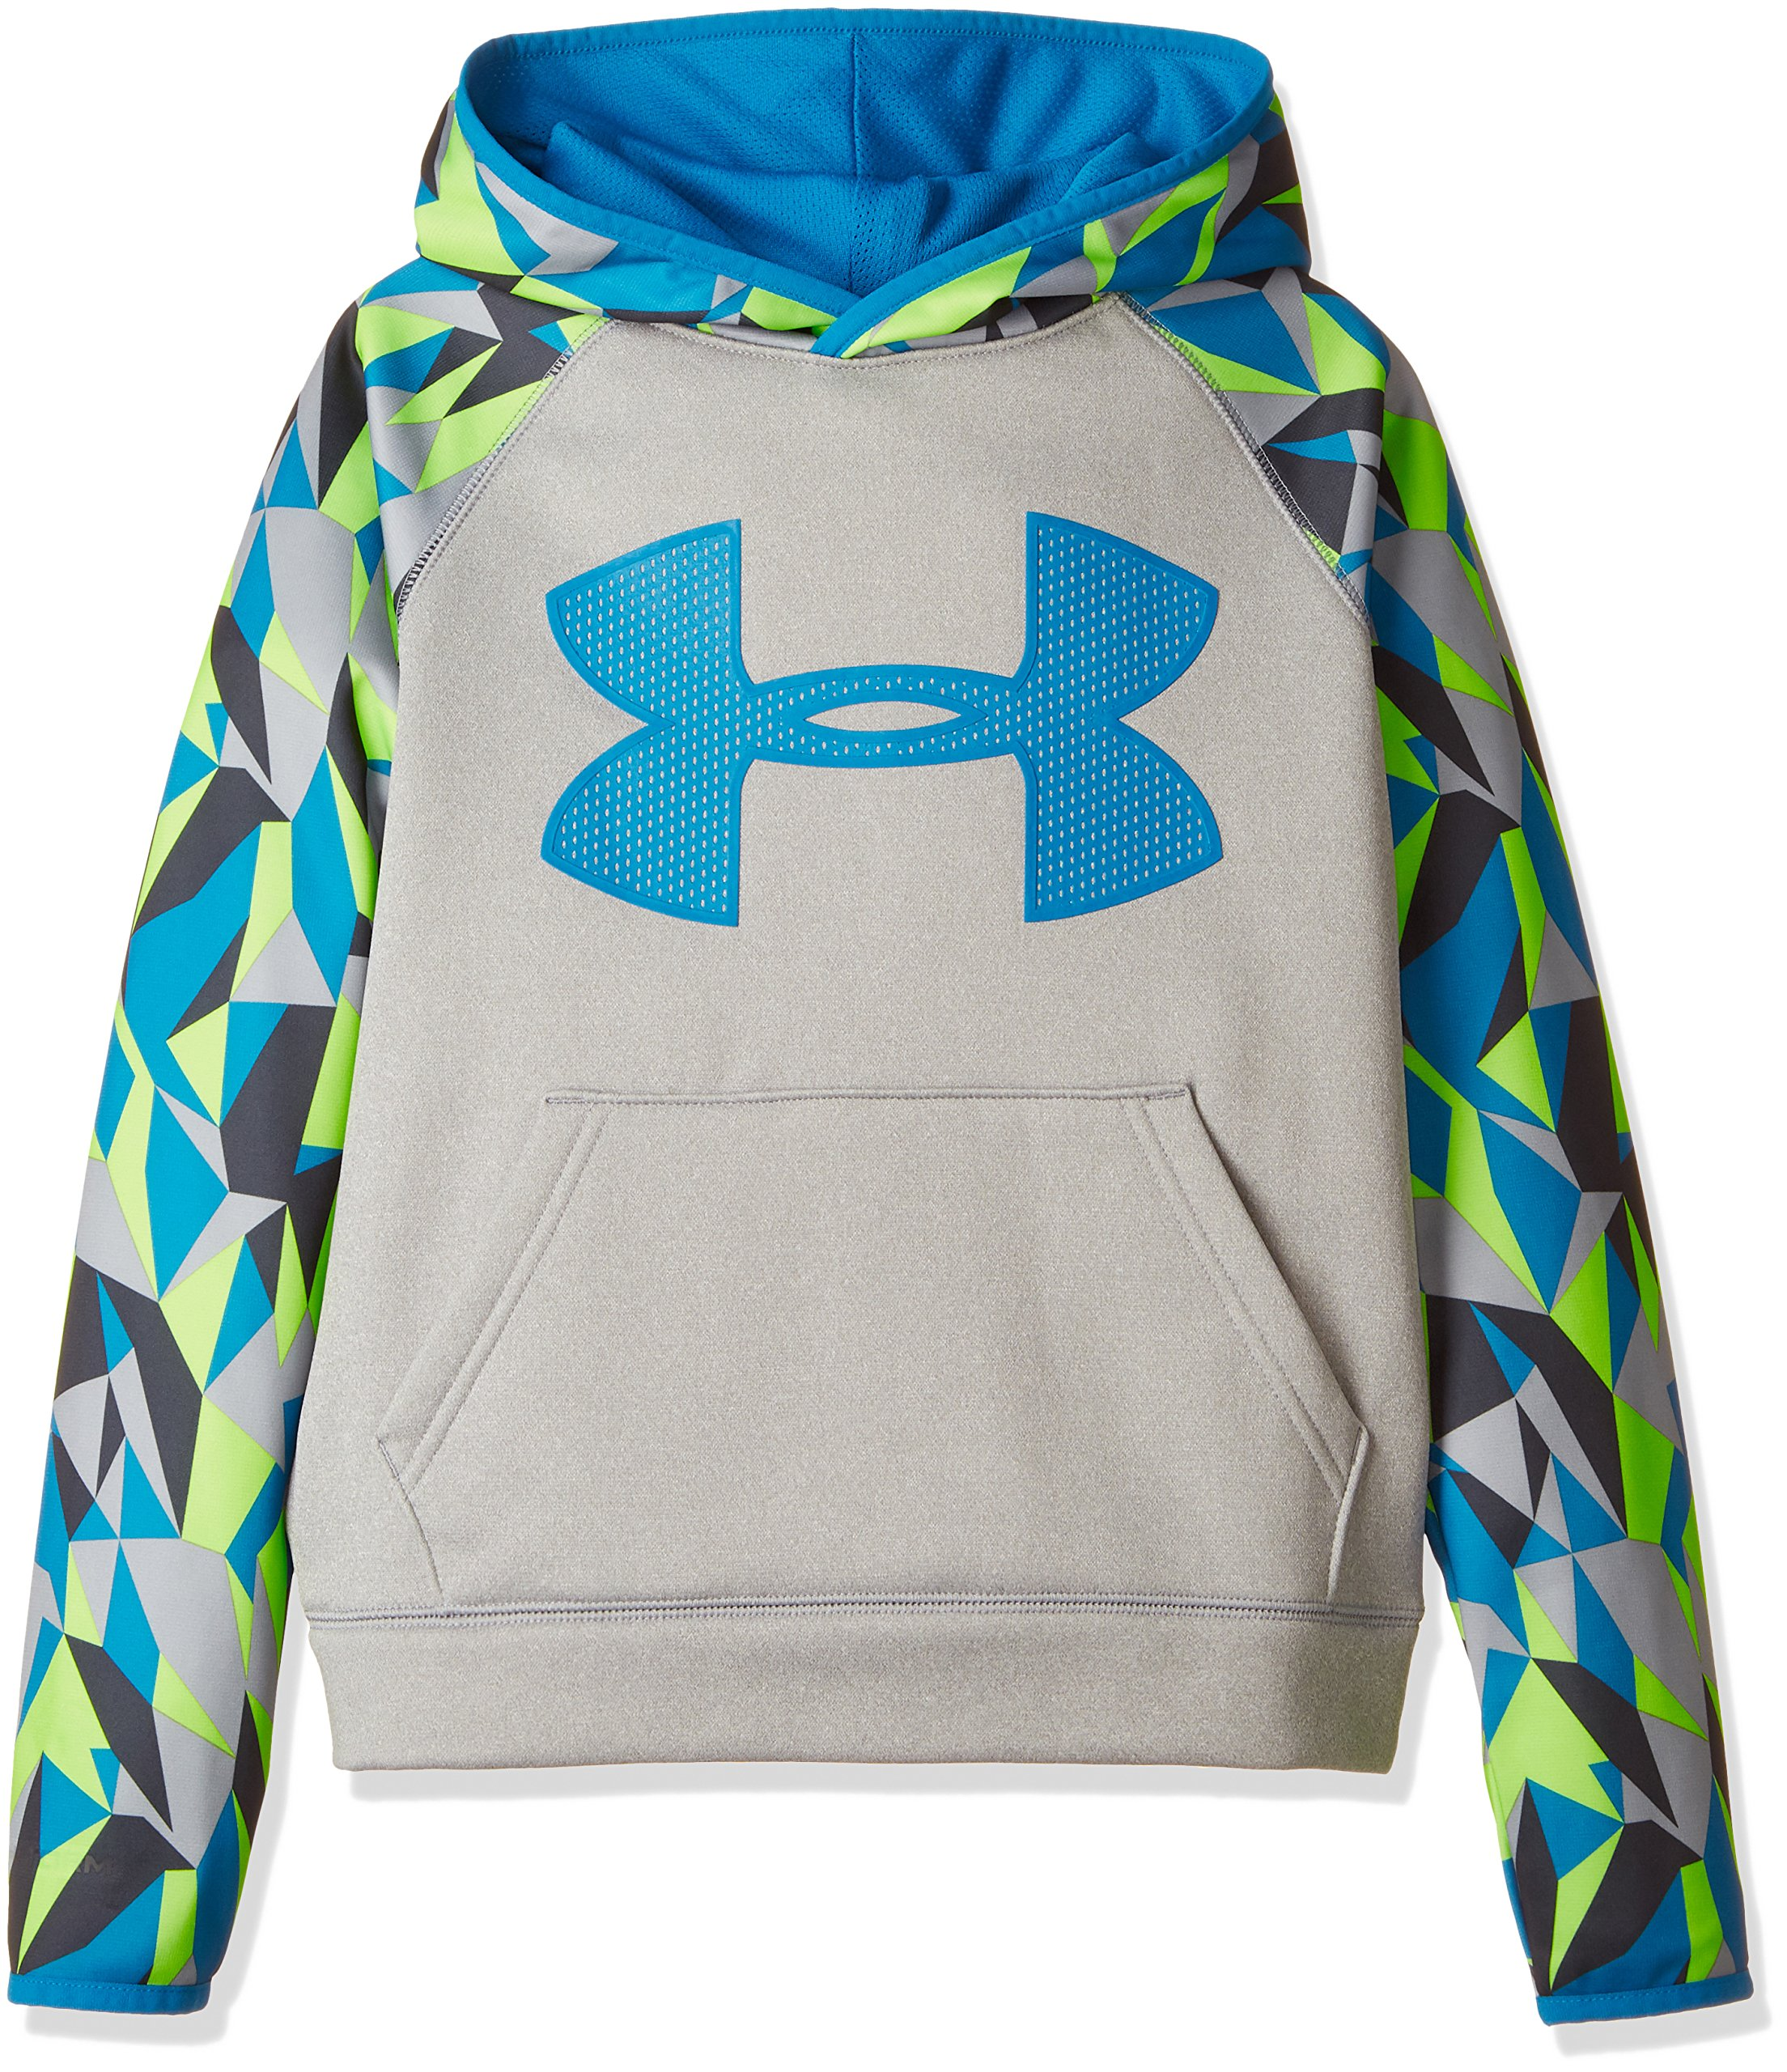 Under Armour Boys' Storm Armour Fleece Big Logo Printed Hoodie,True Gray Heather (025)/Cruise Blue, Youth X-Small